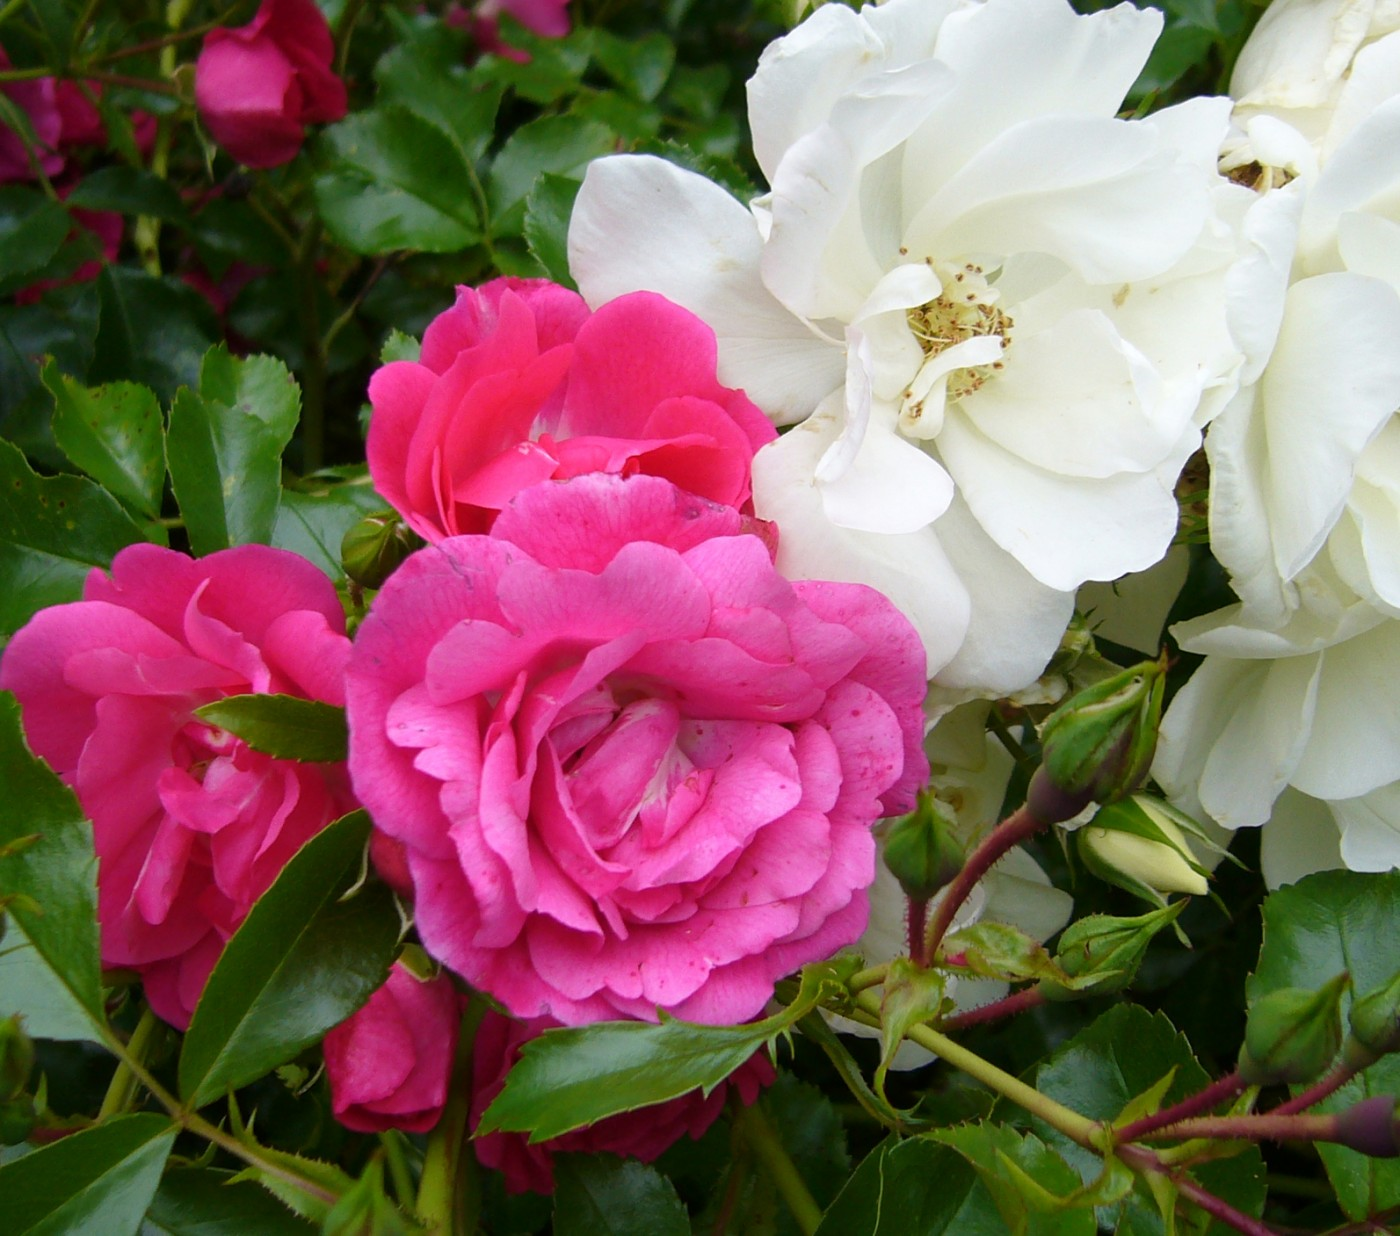 Shrubs Rose 5. Flower Carpet, White _ Pink